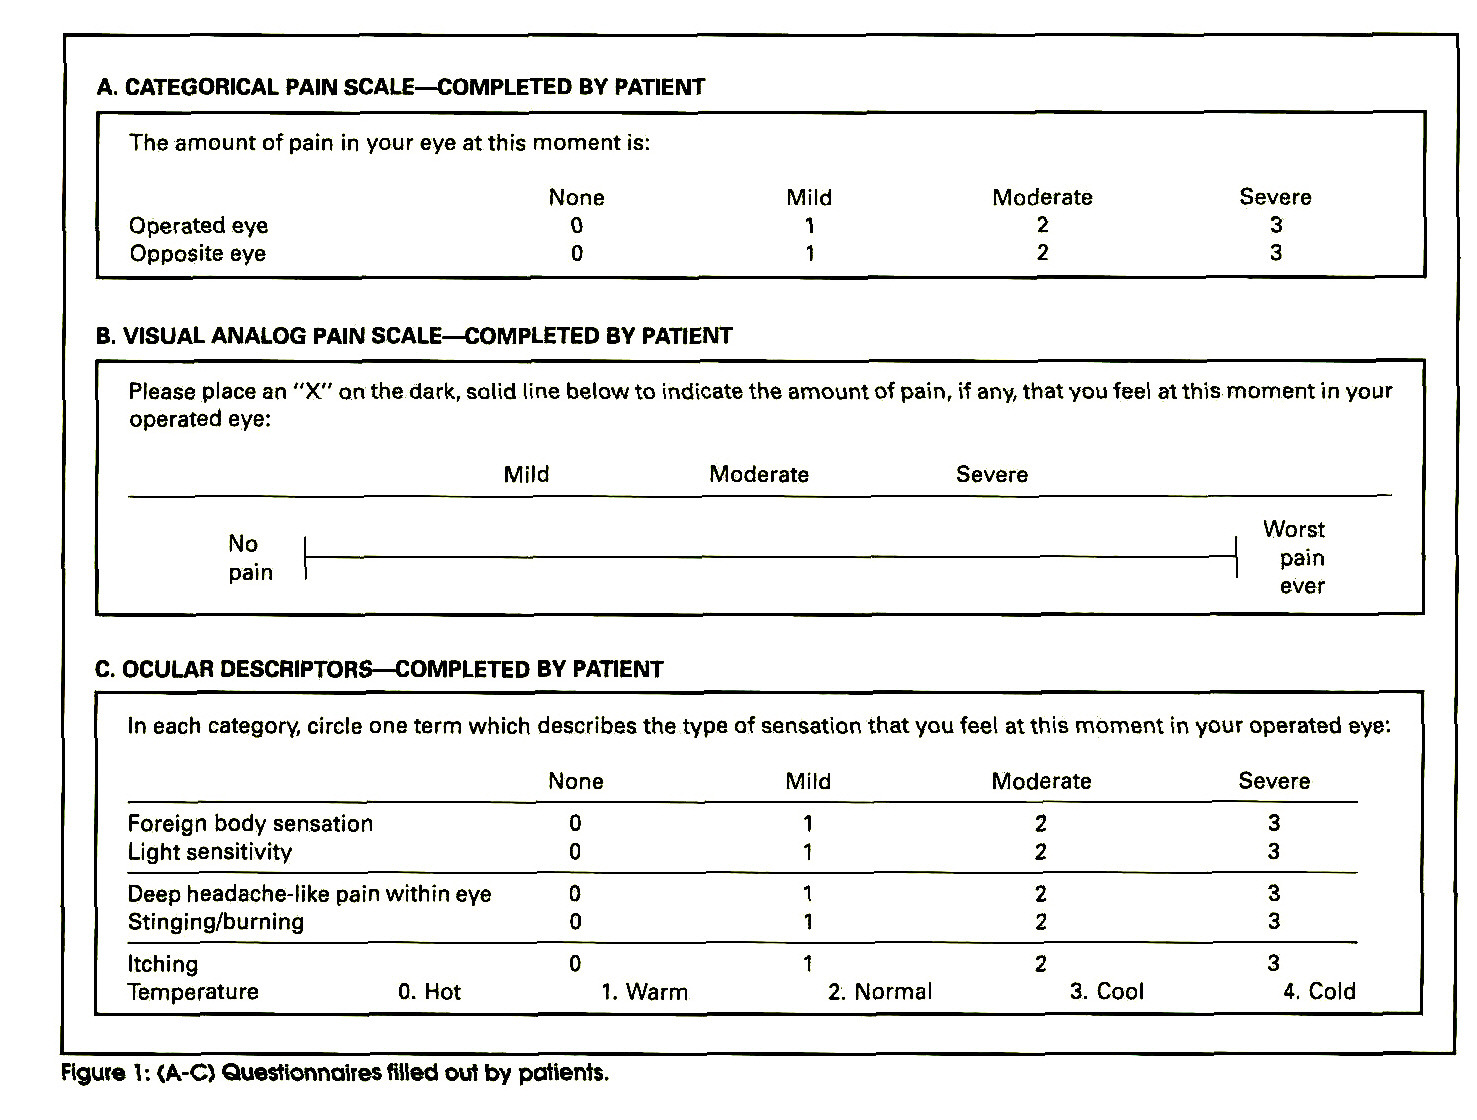 Figure V. (A-C) Questionnaires filled out by patiente.